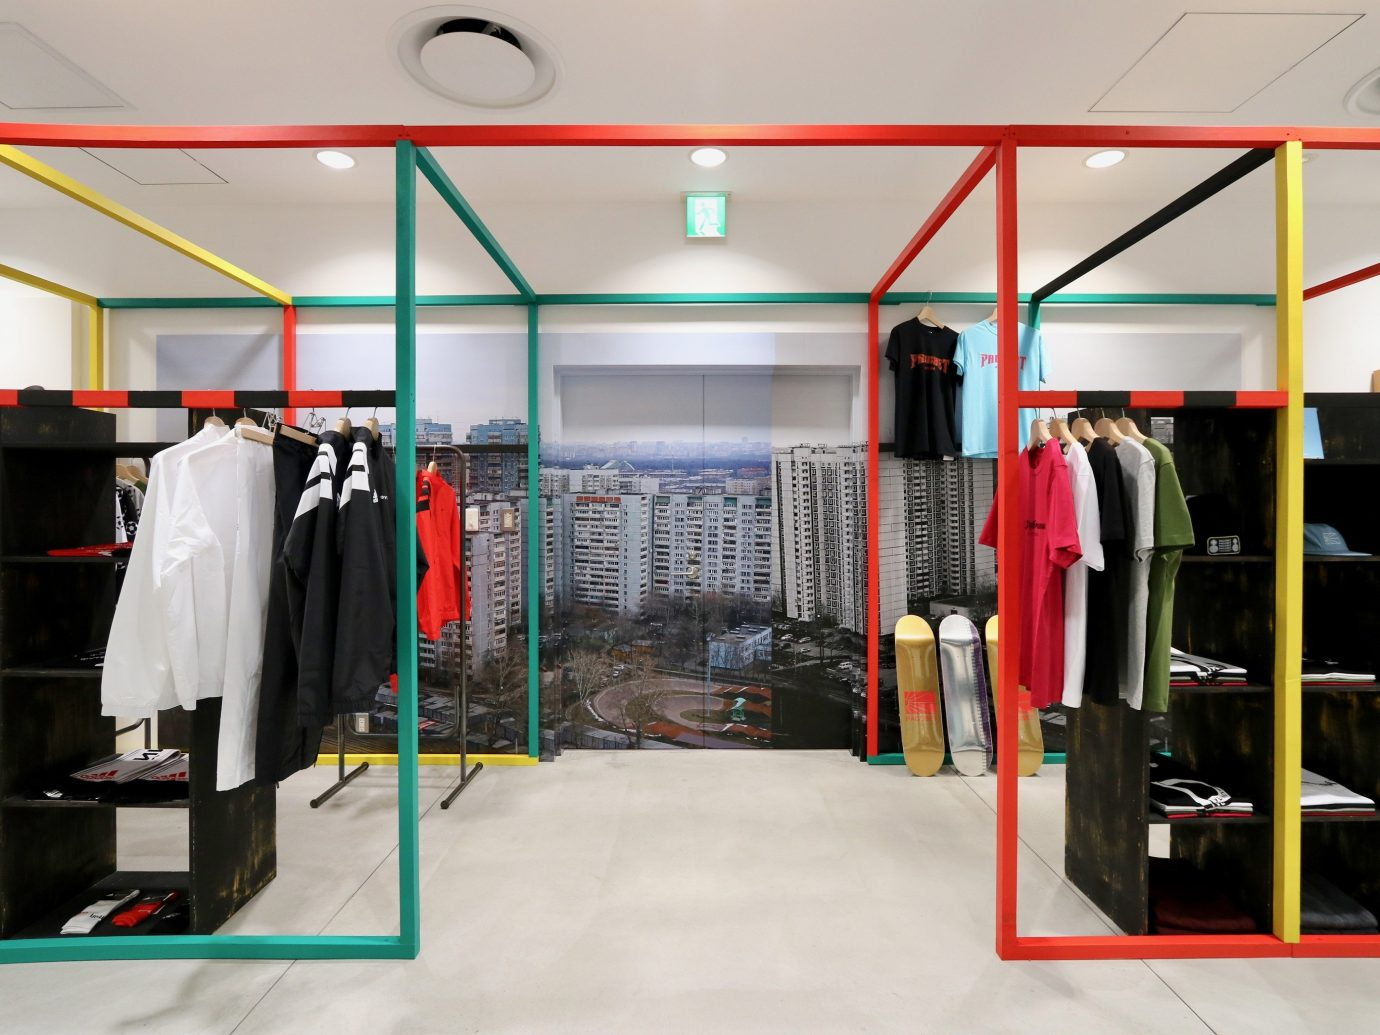 shopping Style + Design Travel Trends Trip Ideas indoor room ceiling structure sport venue gym Boutique retail closet interior design physical fitness Bedroom